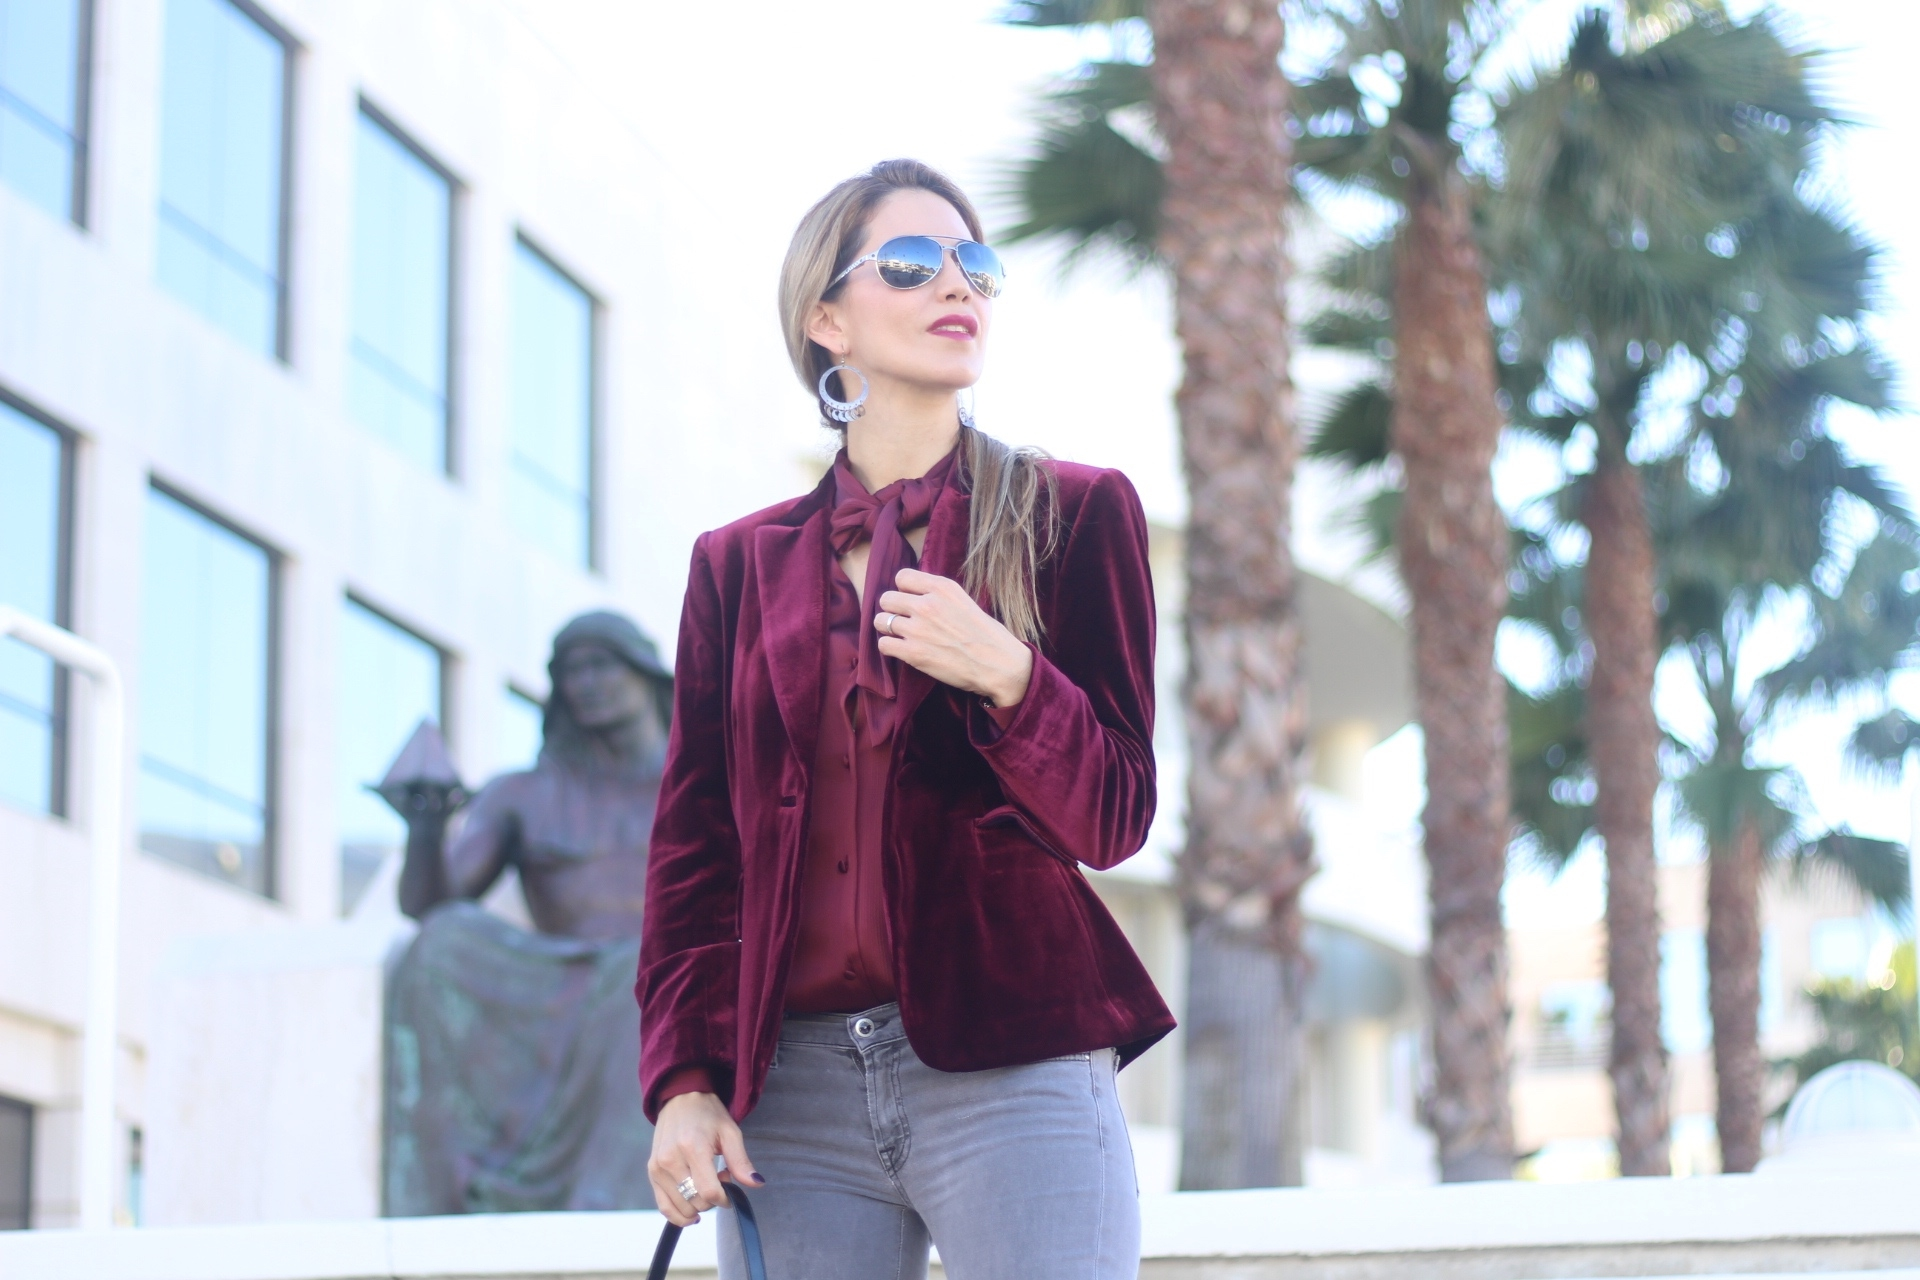 Ready For The Cold With Chic And Cozy Layers